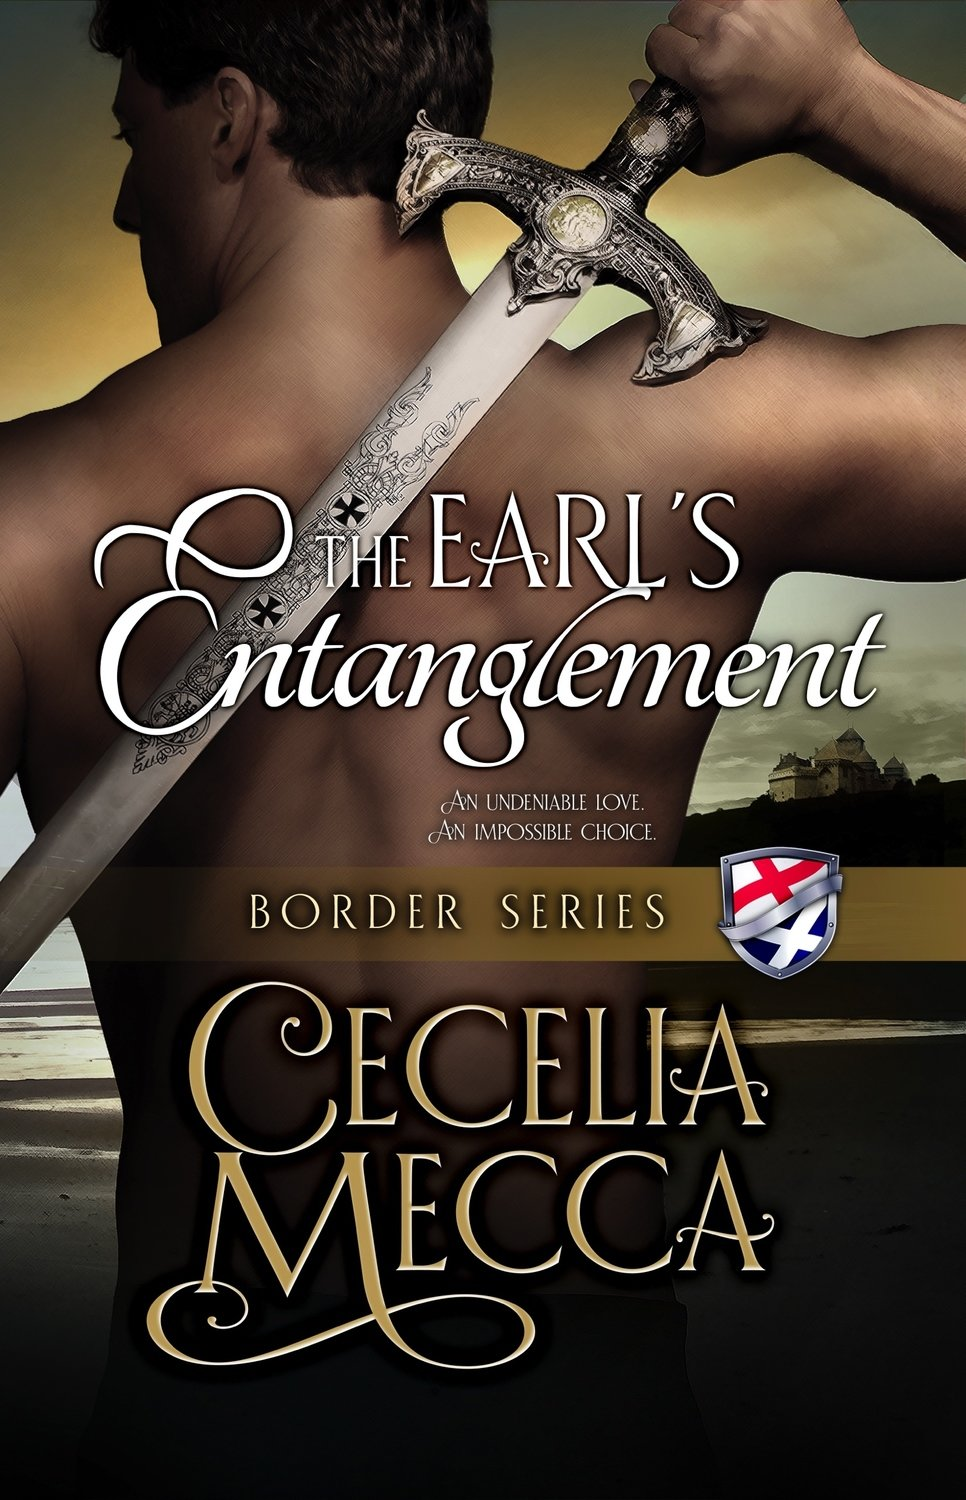 The Earl's Entanglement: Border Series Book 5